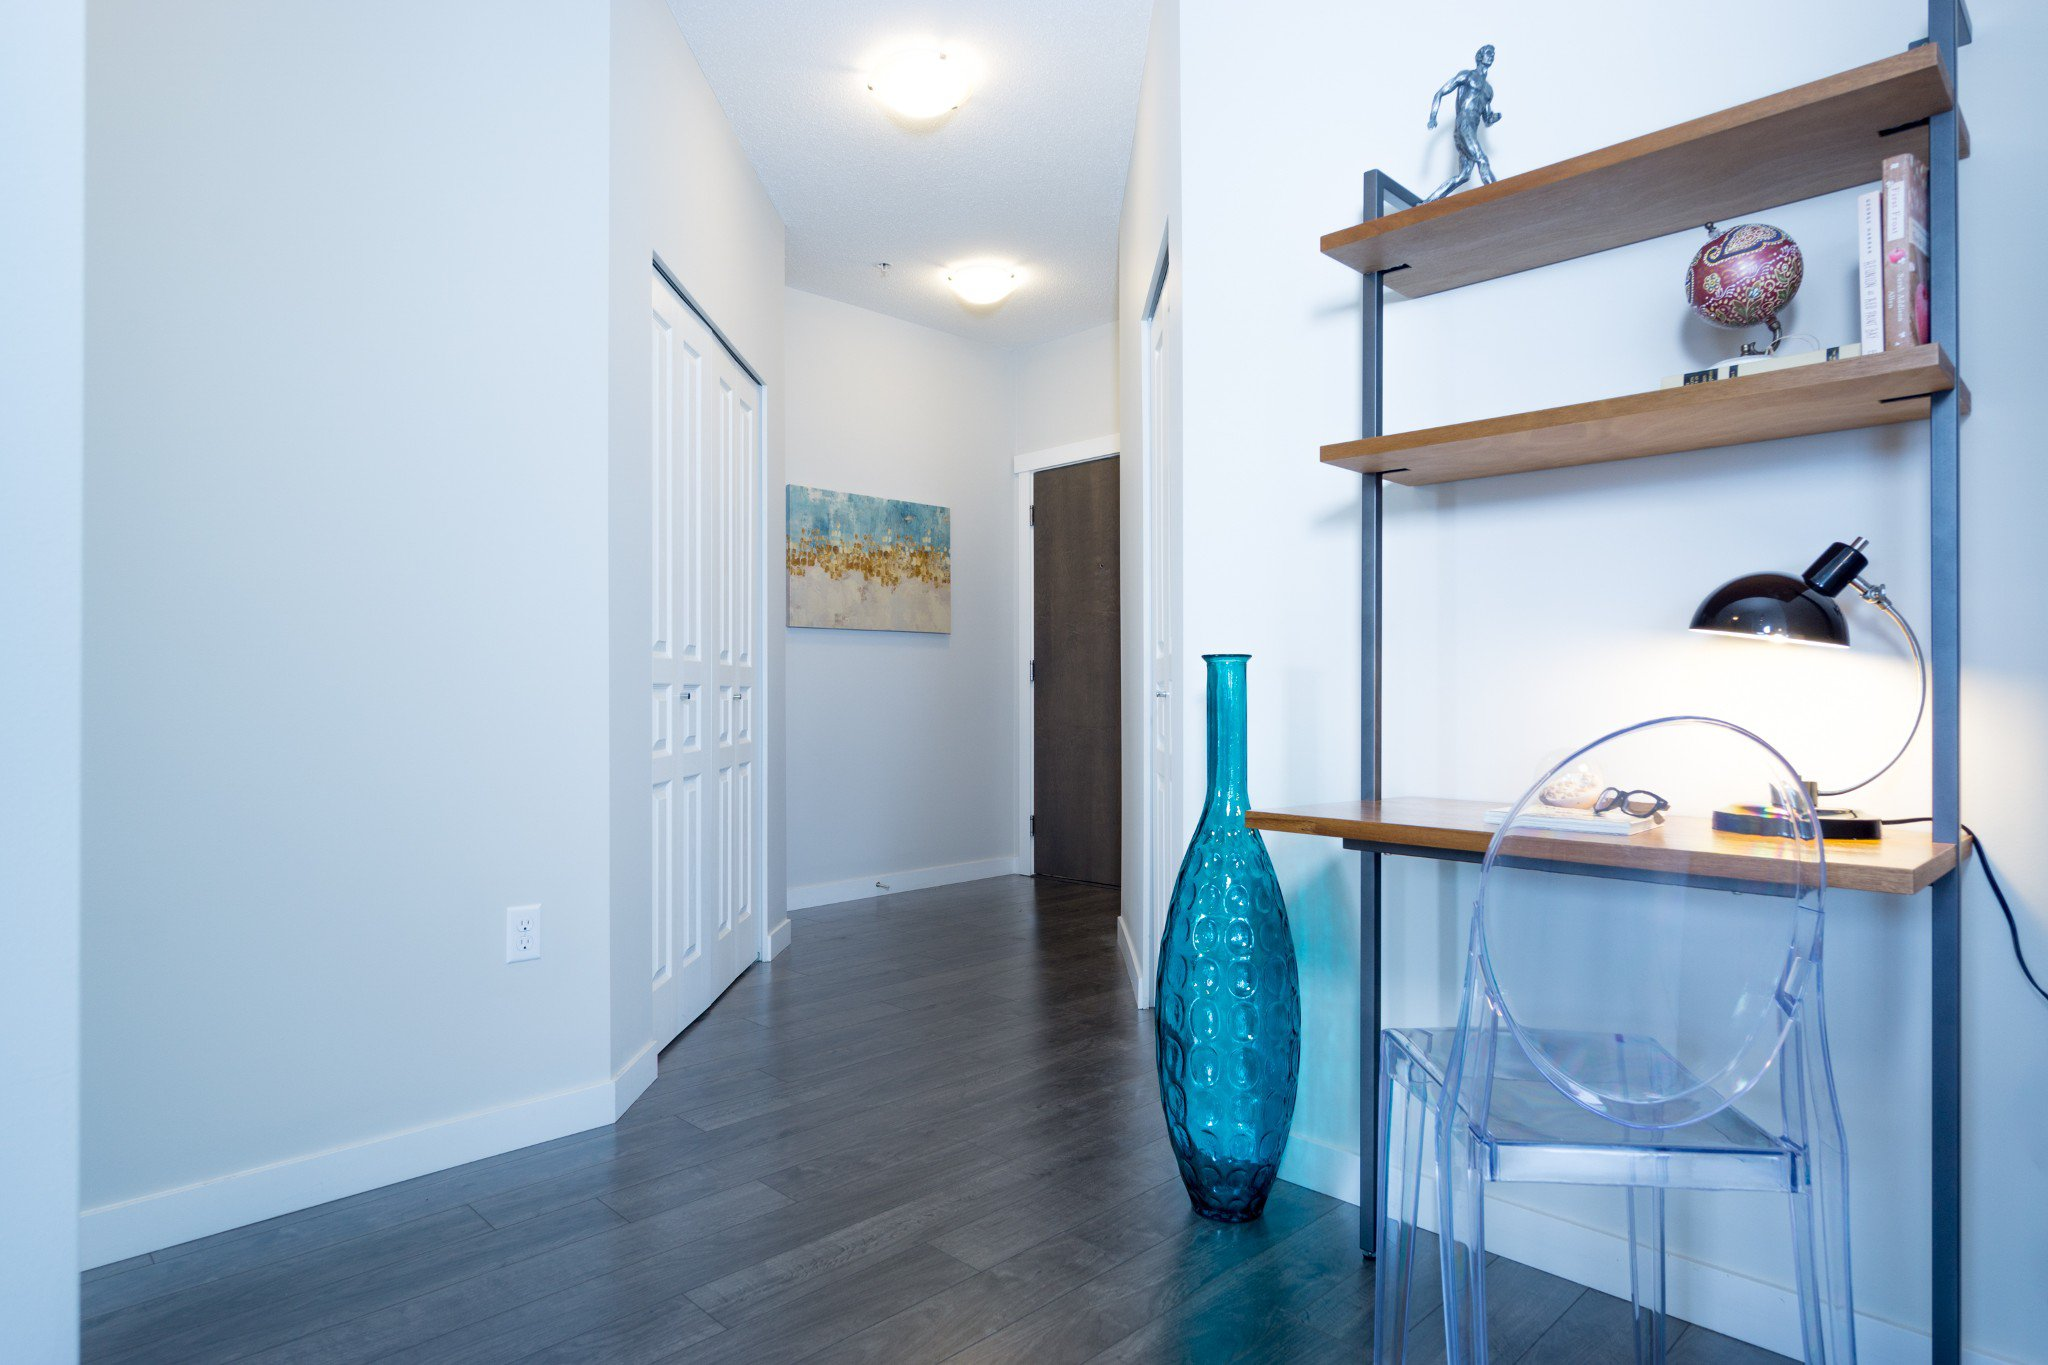 """Photo 26: Photos: 303 9311 ALEXANDRA Road in Richmond: West Cambie Condo for sale in """"ALEXANDRA COURT"""" : MLS®# R2347629"""